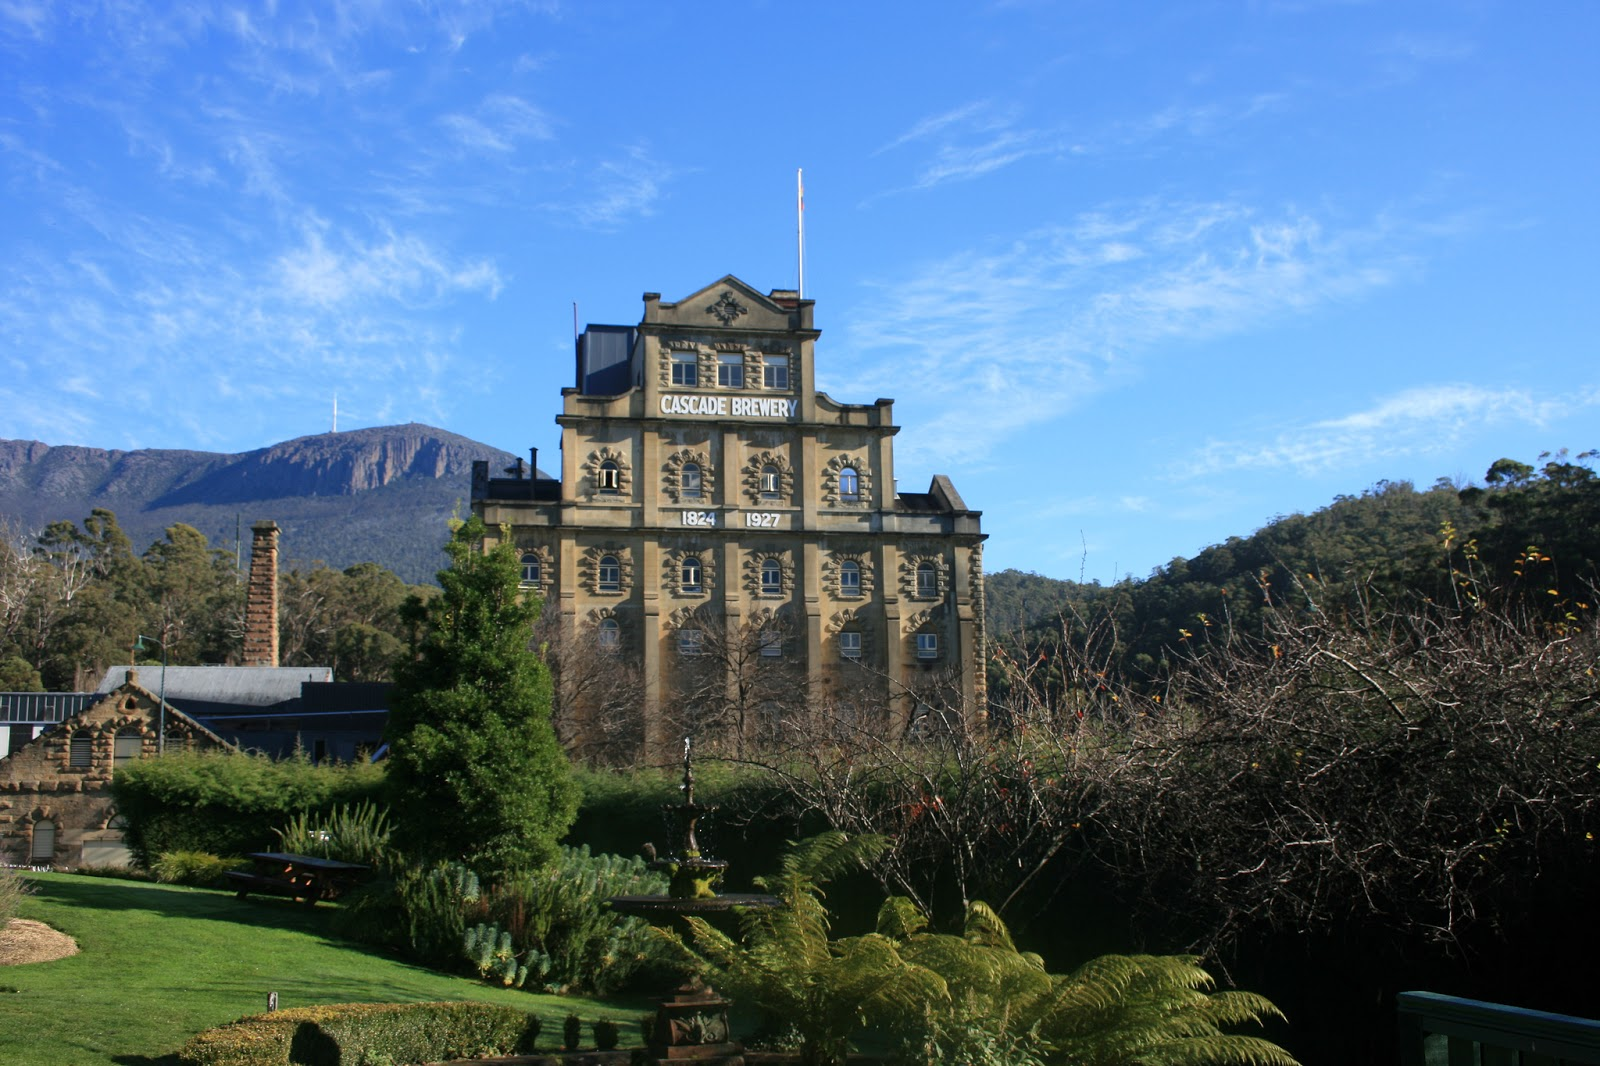 Launceston Australia  city photo : voyage to Tasmania, Australia, Pacific Hobart, Launceston ...